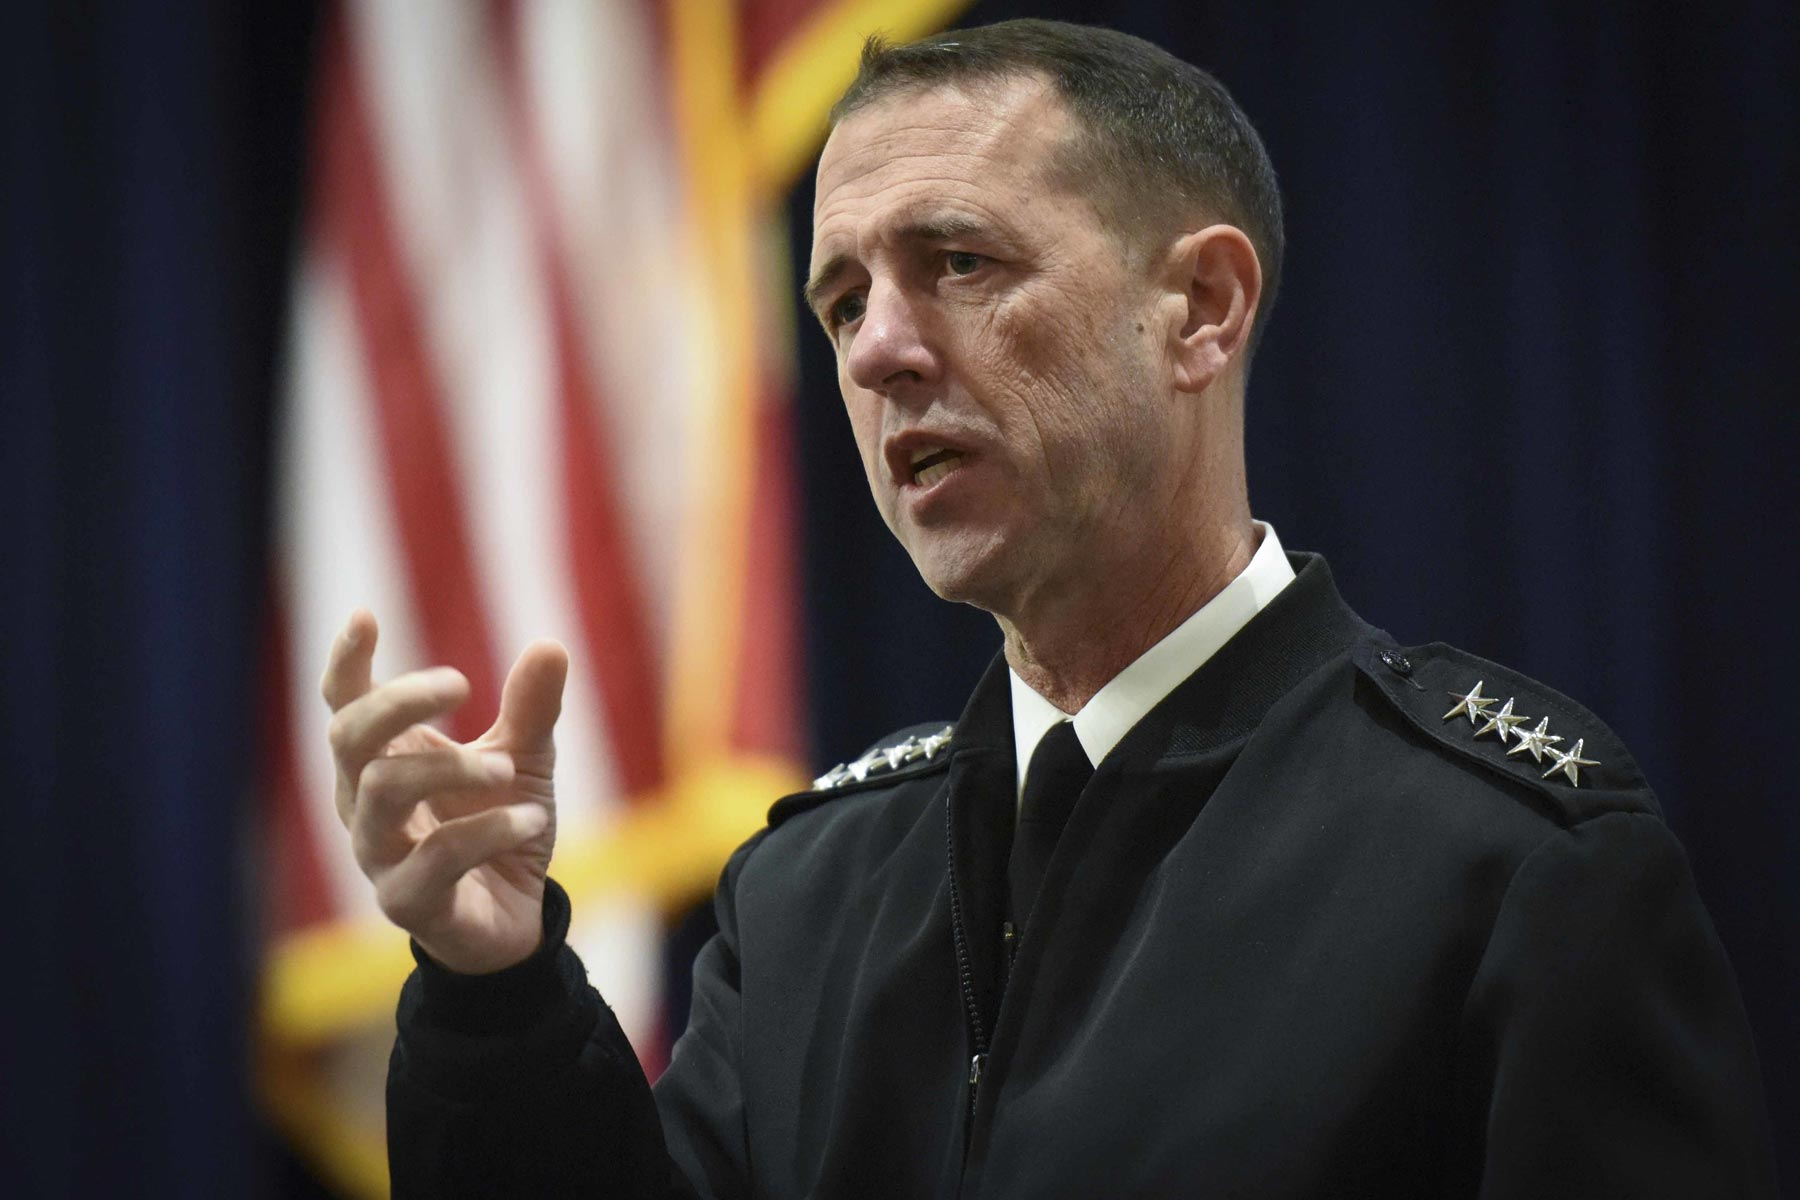 Mail-In Ancestry DNA Kits May Help Enemy to Target You, Navy's Top Officer Says